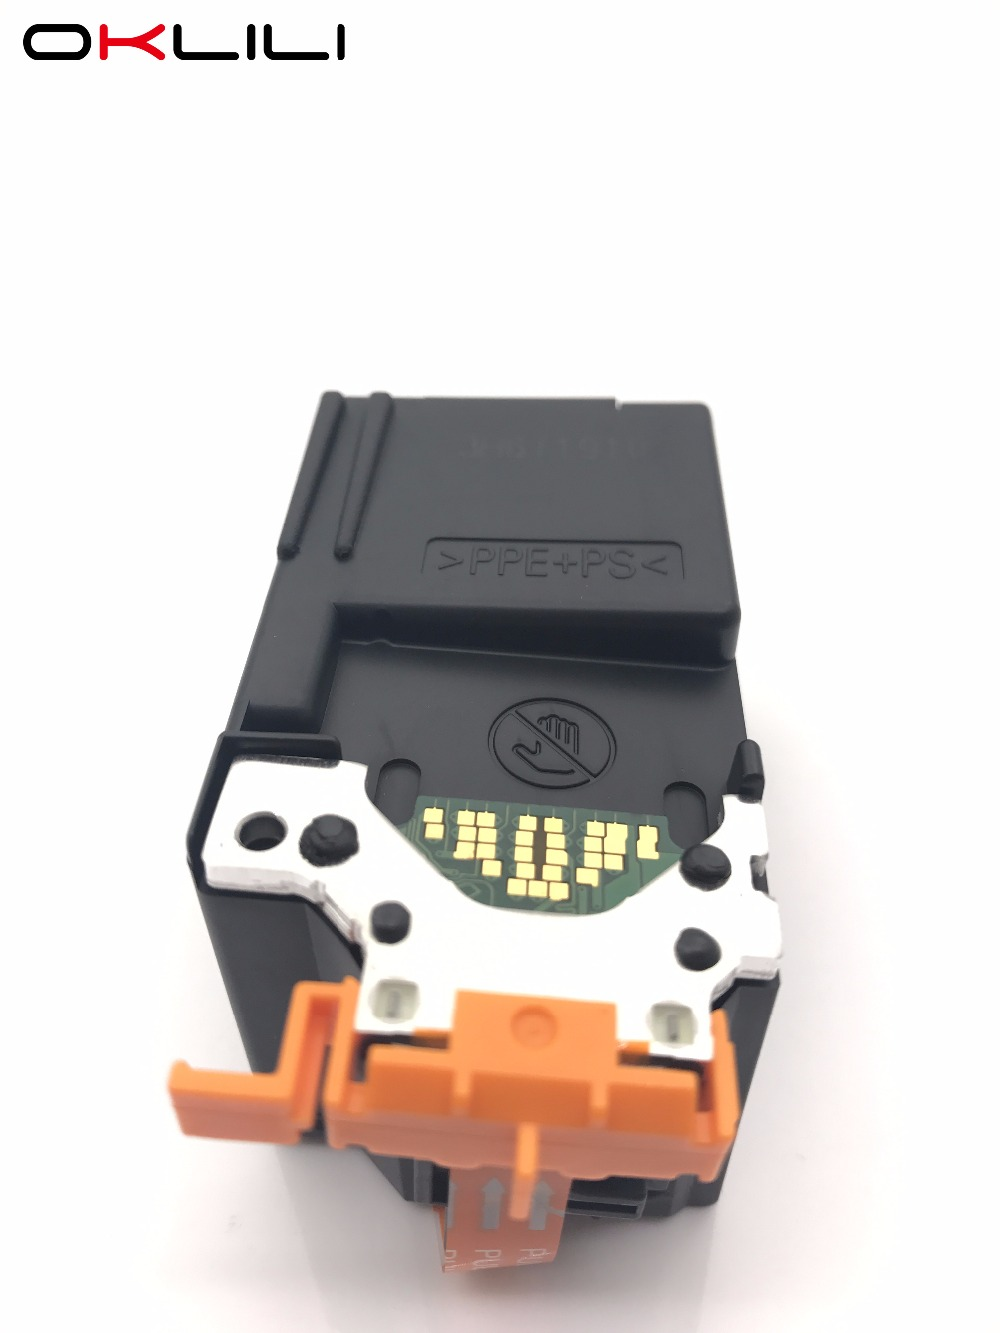 OKLILI ORIGINAL NEW QY6-0038 QY6-0038-000 Printhead Print Head Printer Head for Canon BJ S200 S200x S200SP S200SPx genuine brand new qy6 0077 printhead print head for canon pro 9500 mark ii printer